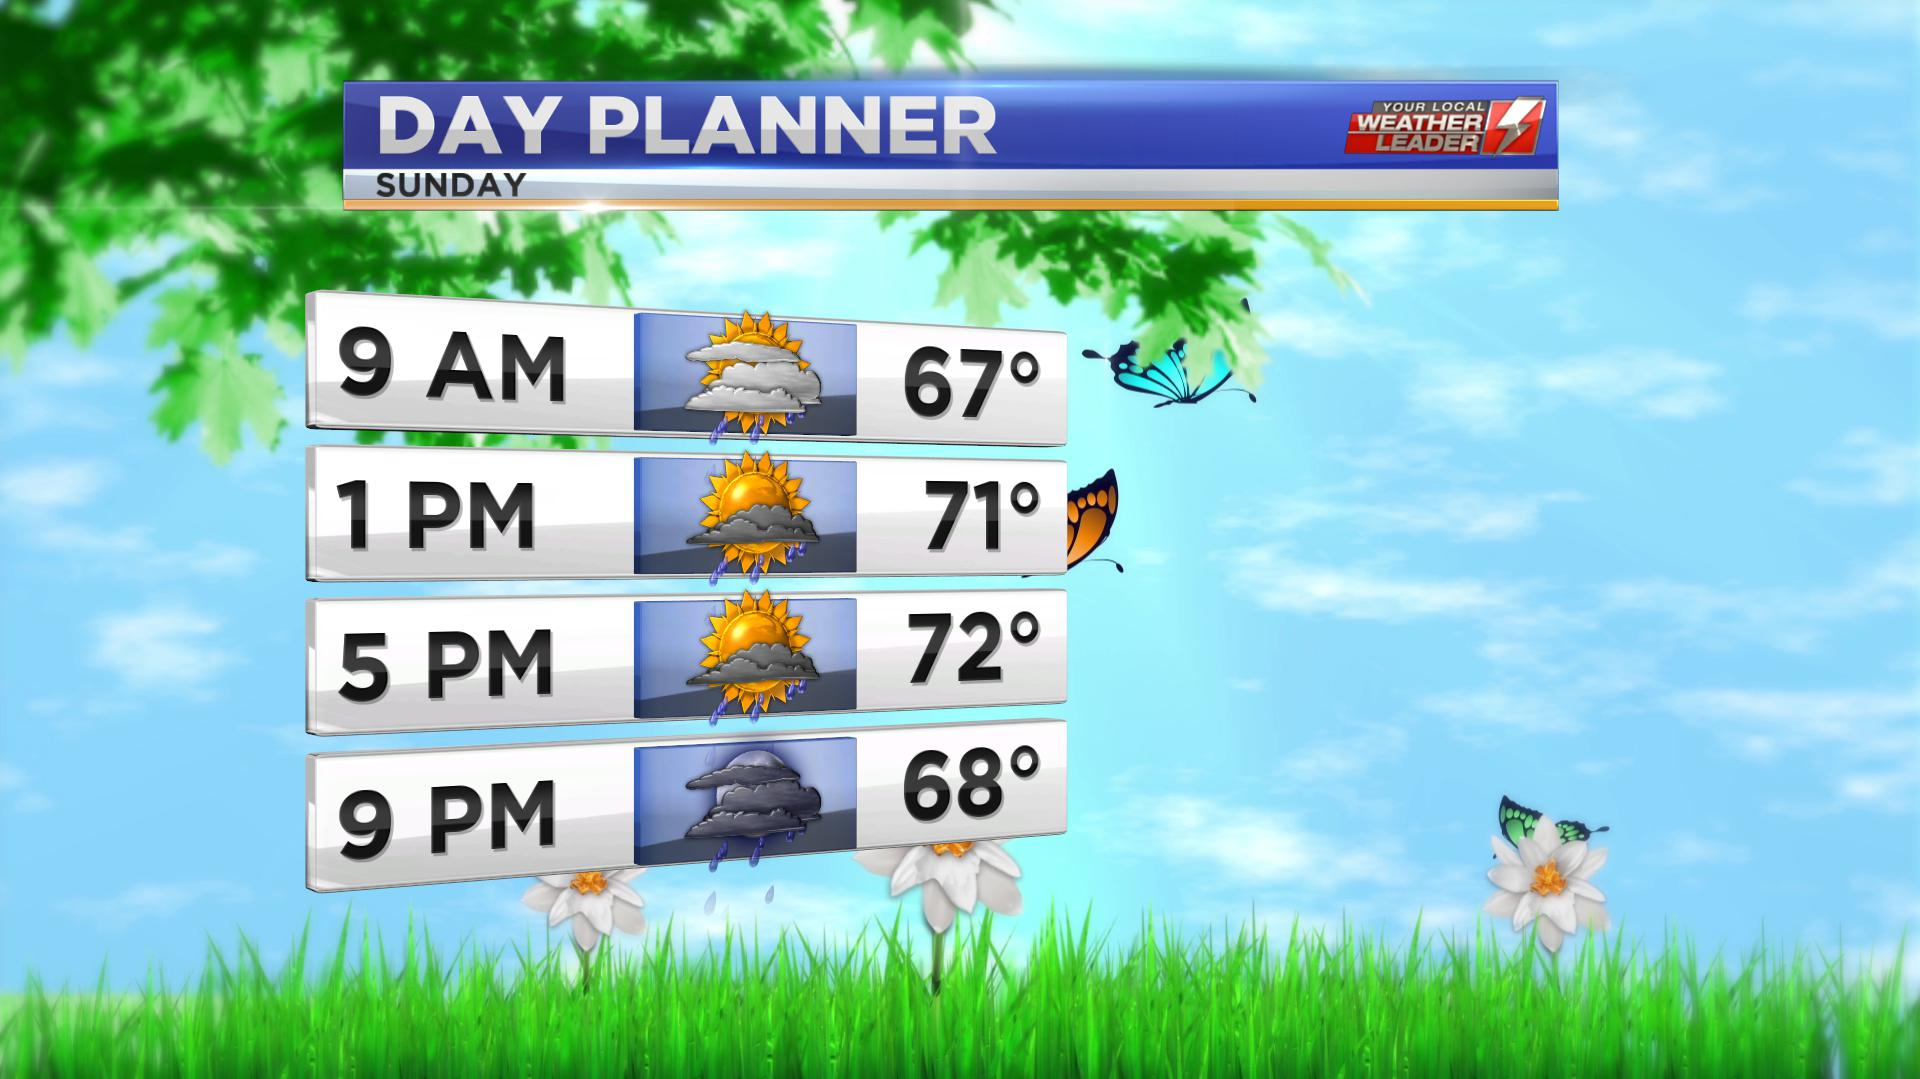 Day Planner for Sunday 09 June 2019